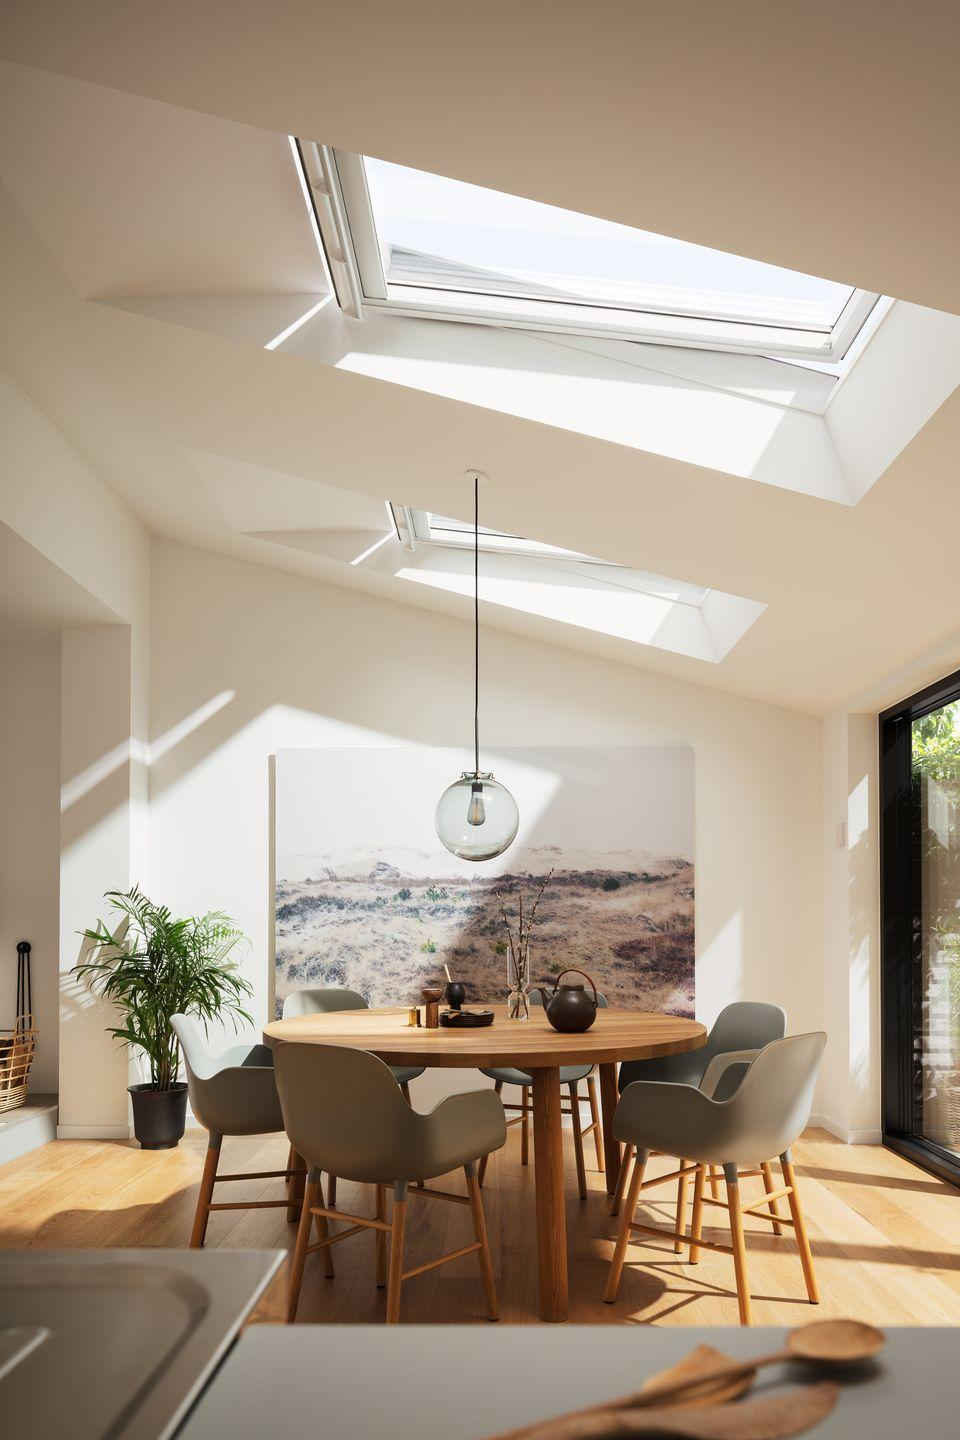 Photo credit: Courtesy Velux